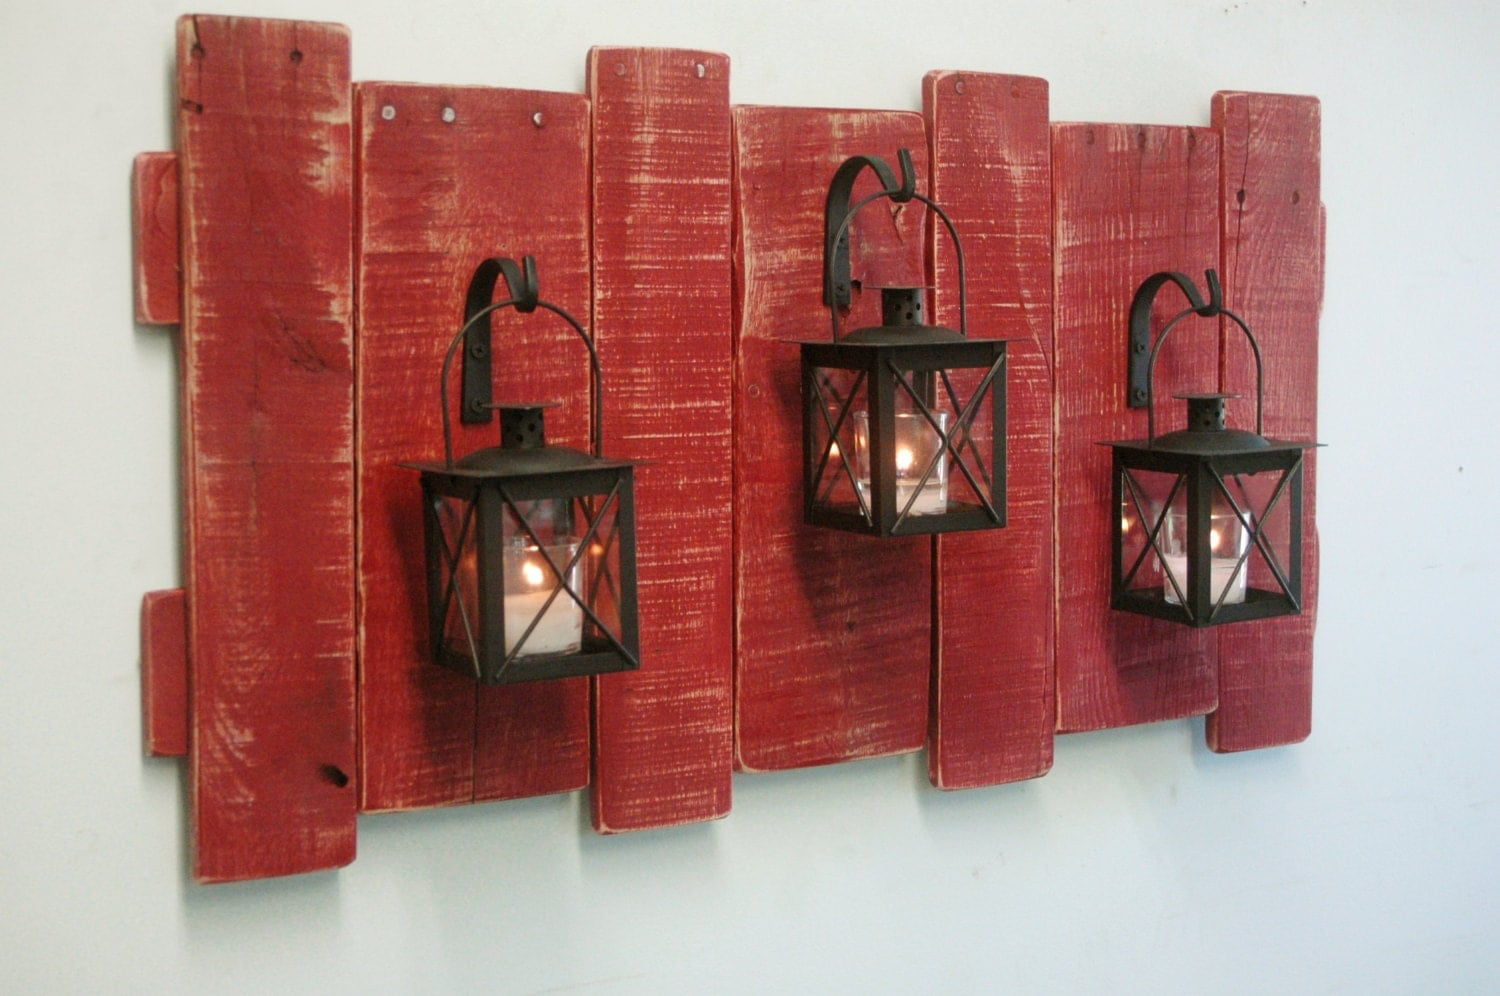 Pallet Wall Decor With Lanterns Rustic Decor Shabby Chic. Living Room Ideas For Apartments. Cute Wedding Decorations. Decorative Iron. Palm Tree Kitchen Decor. Leather Reclining Living Room Sets. Camouflage Bedroom Decor. 70th Birthday Party Decorations. Primitive Valentine Decor